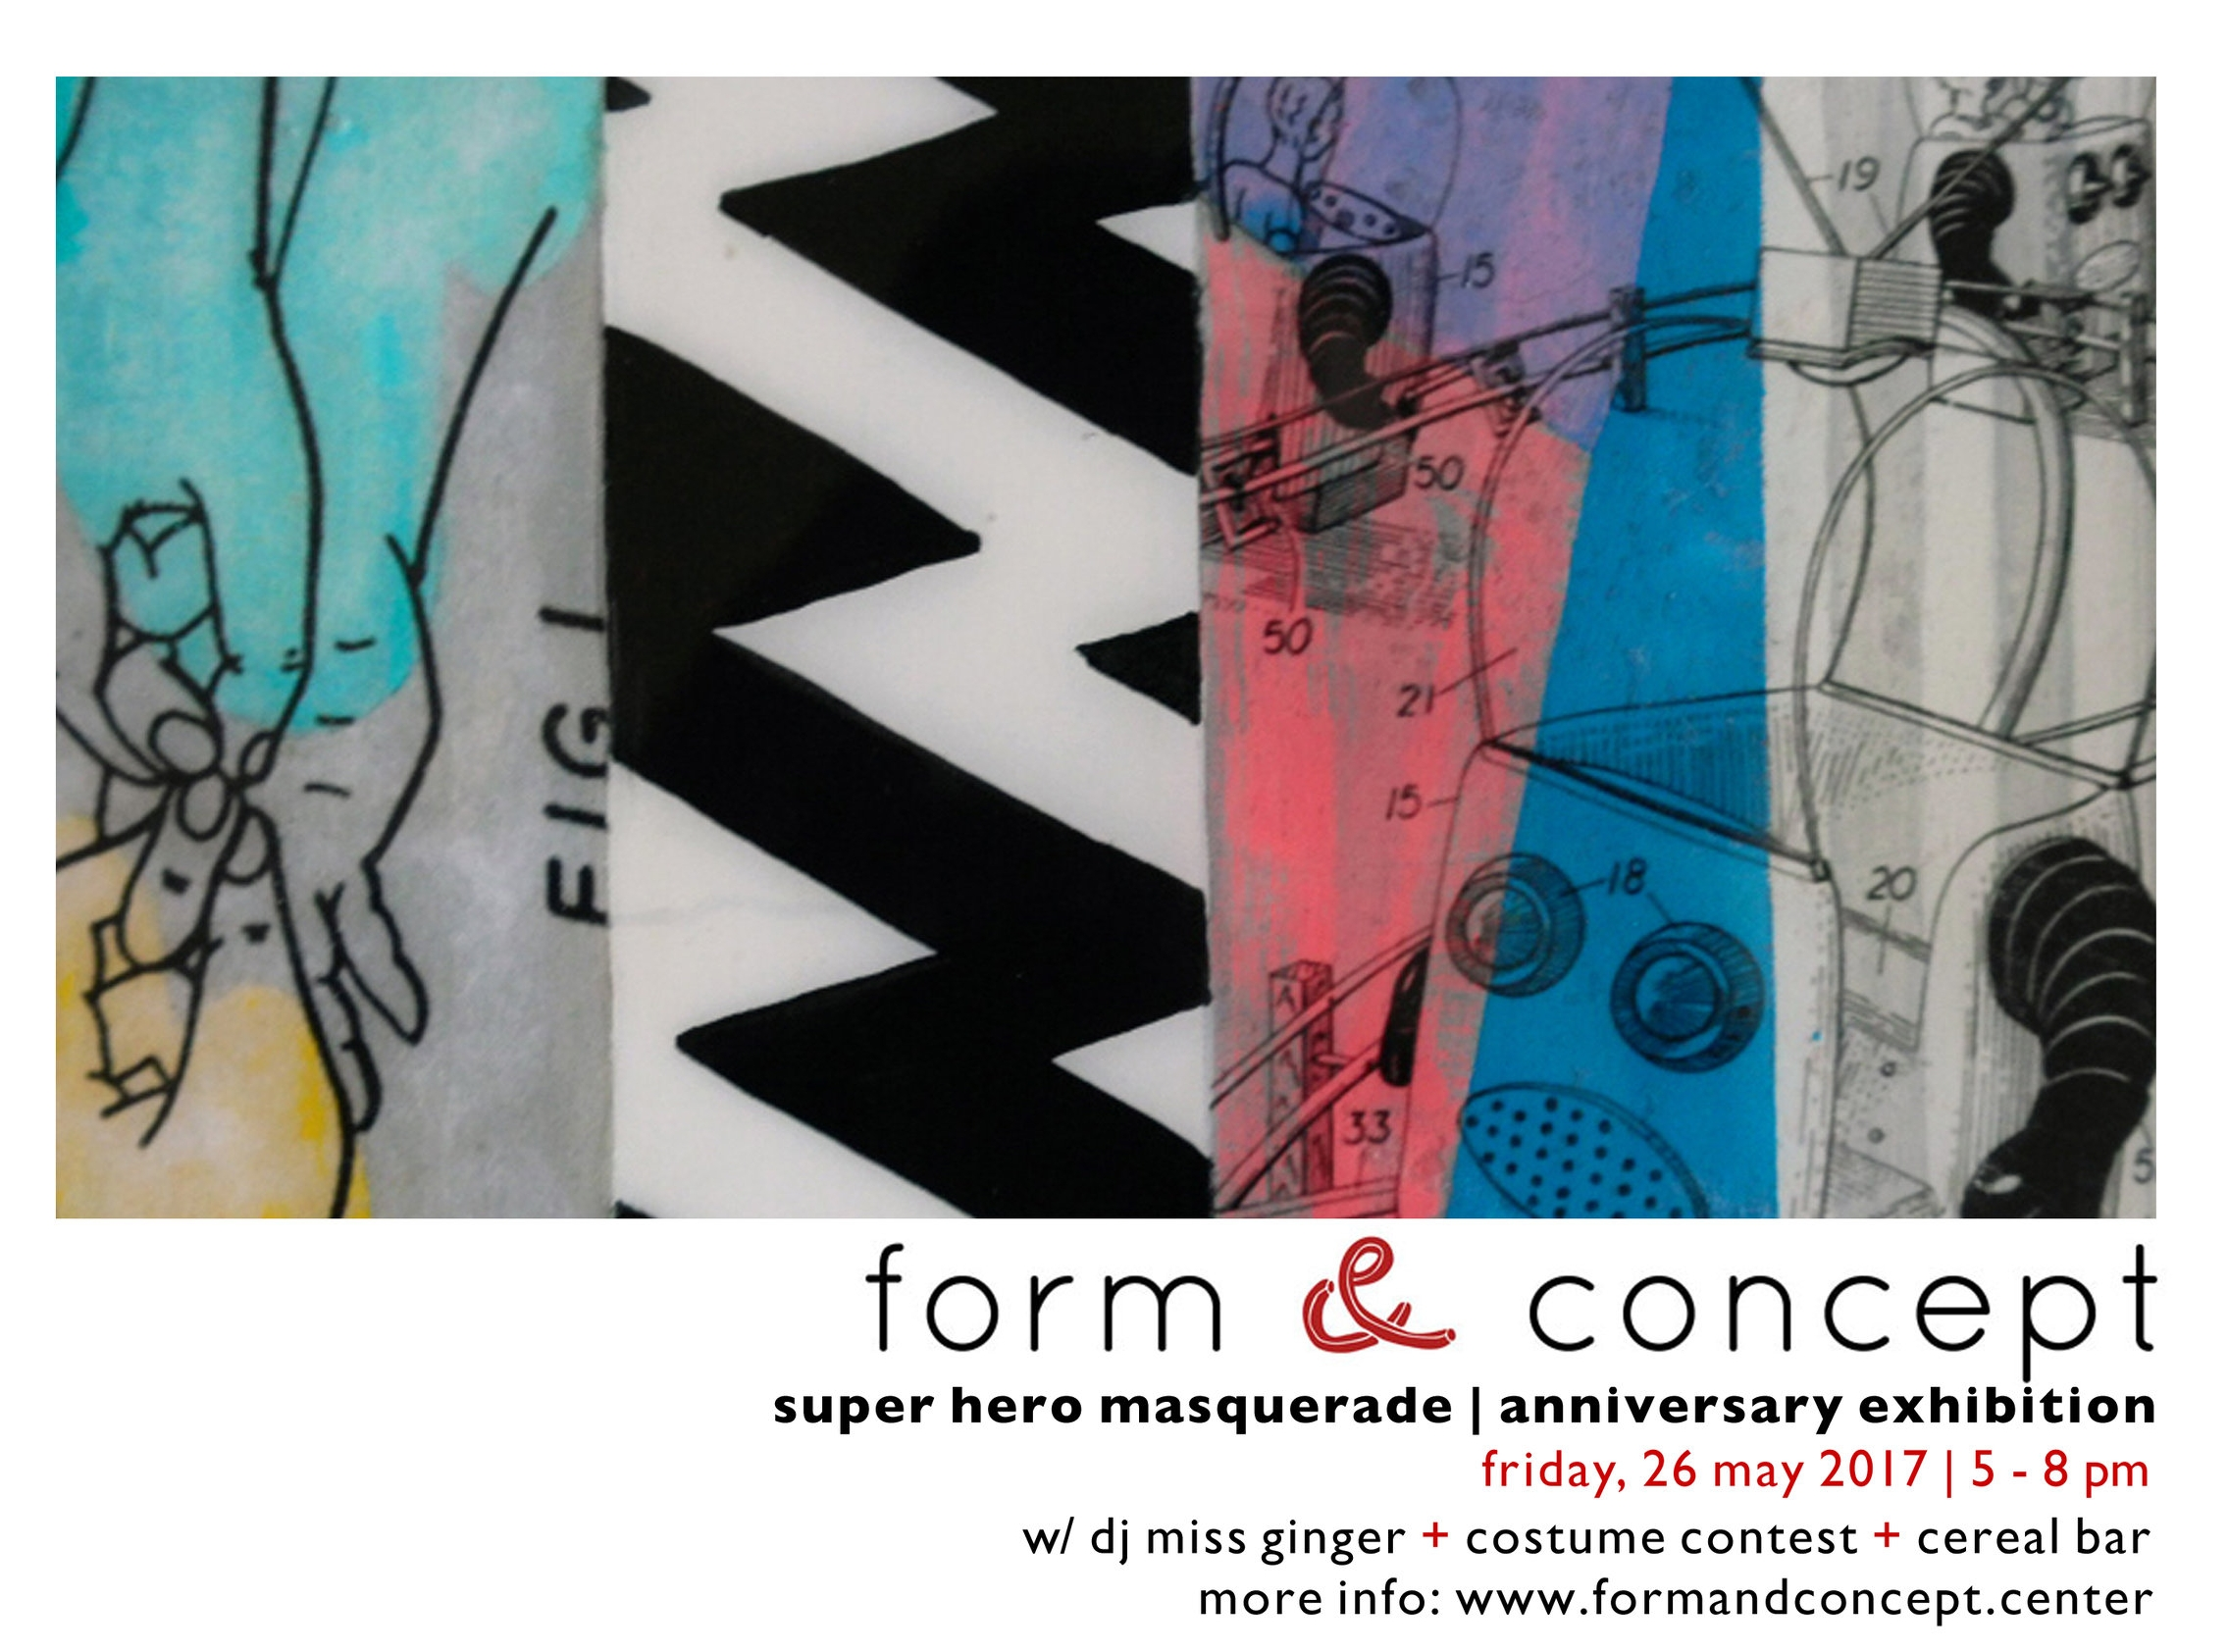 for more information, please visit:  form & concept gallery